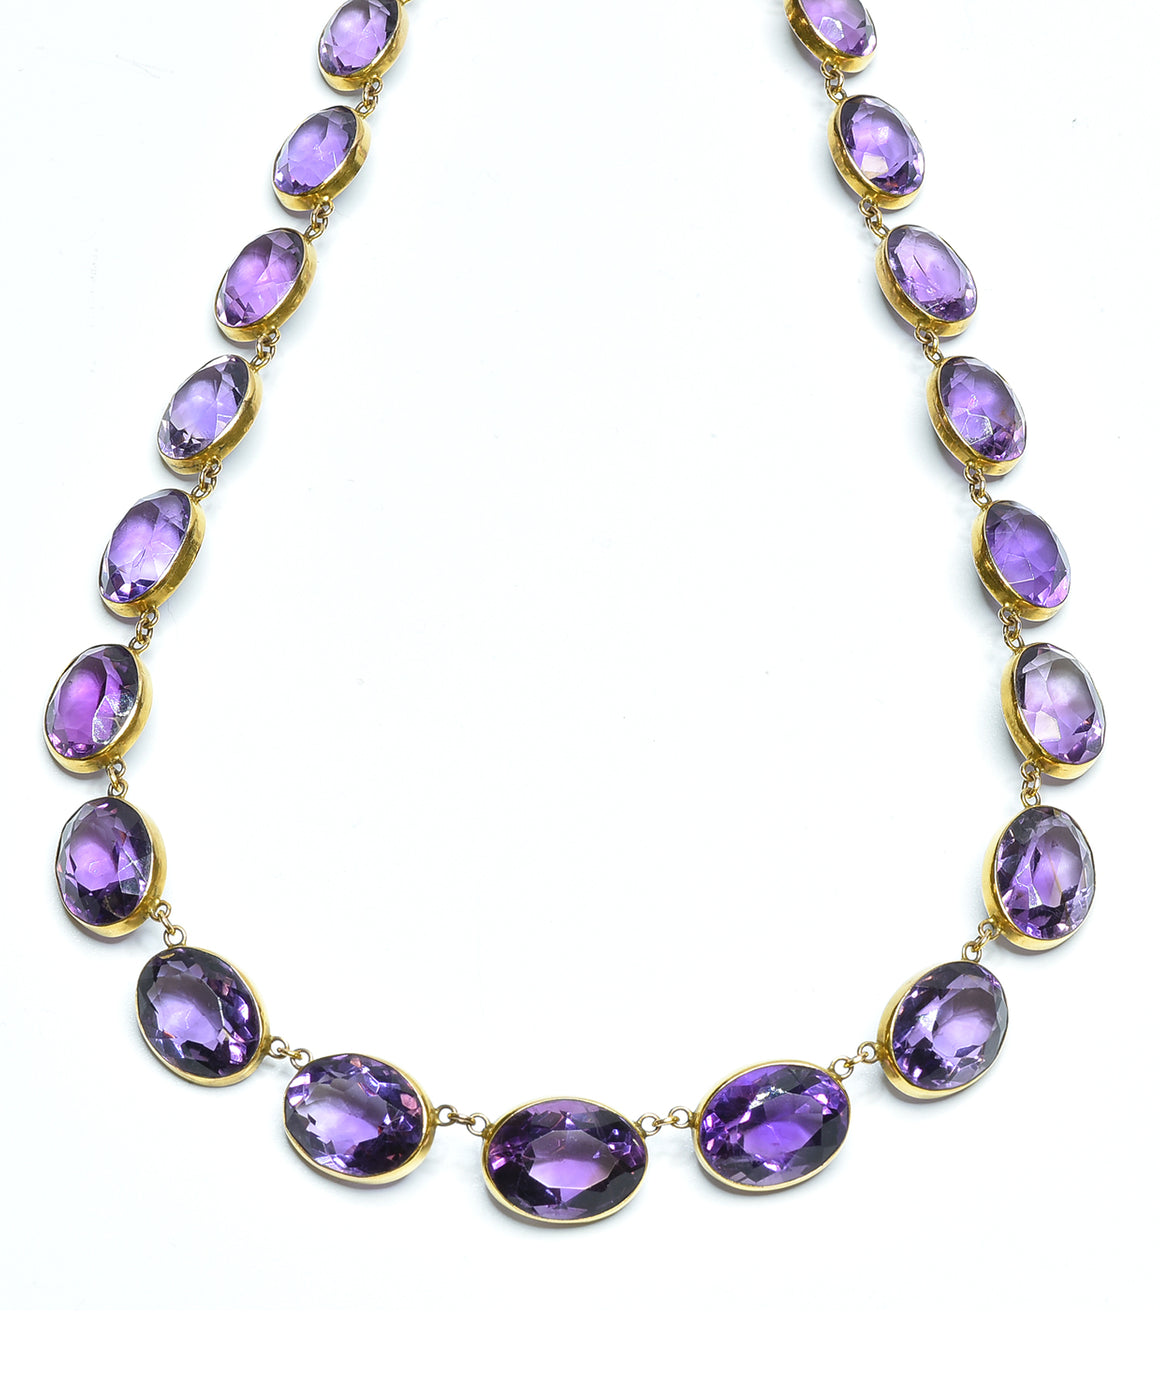 Amethyst collet necklace